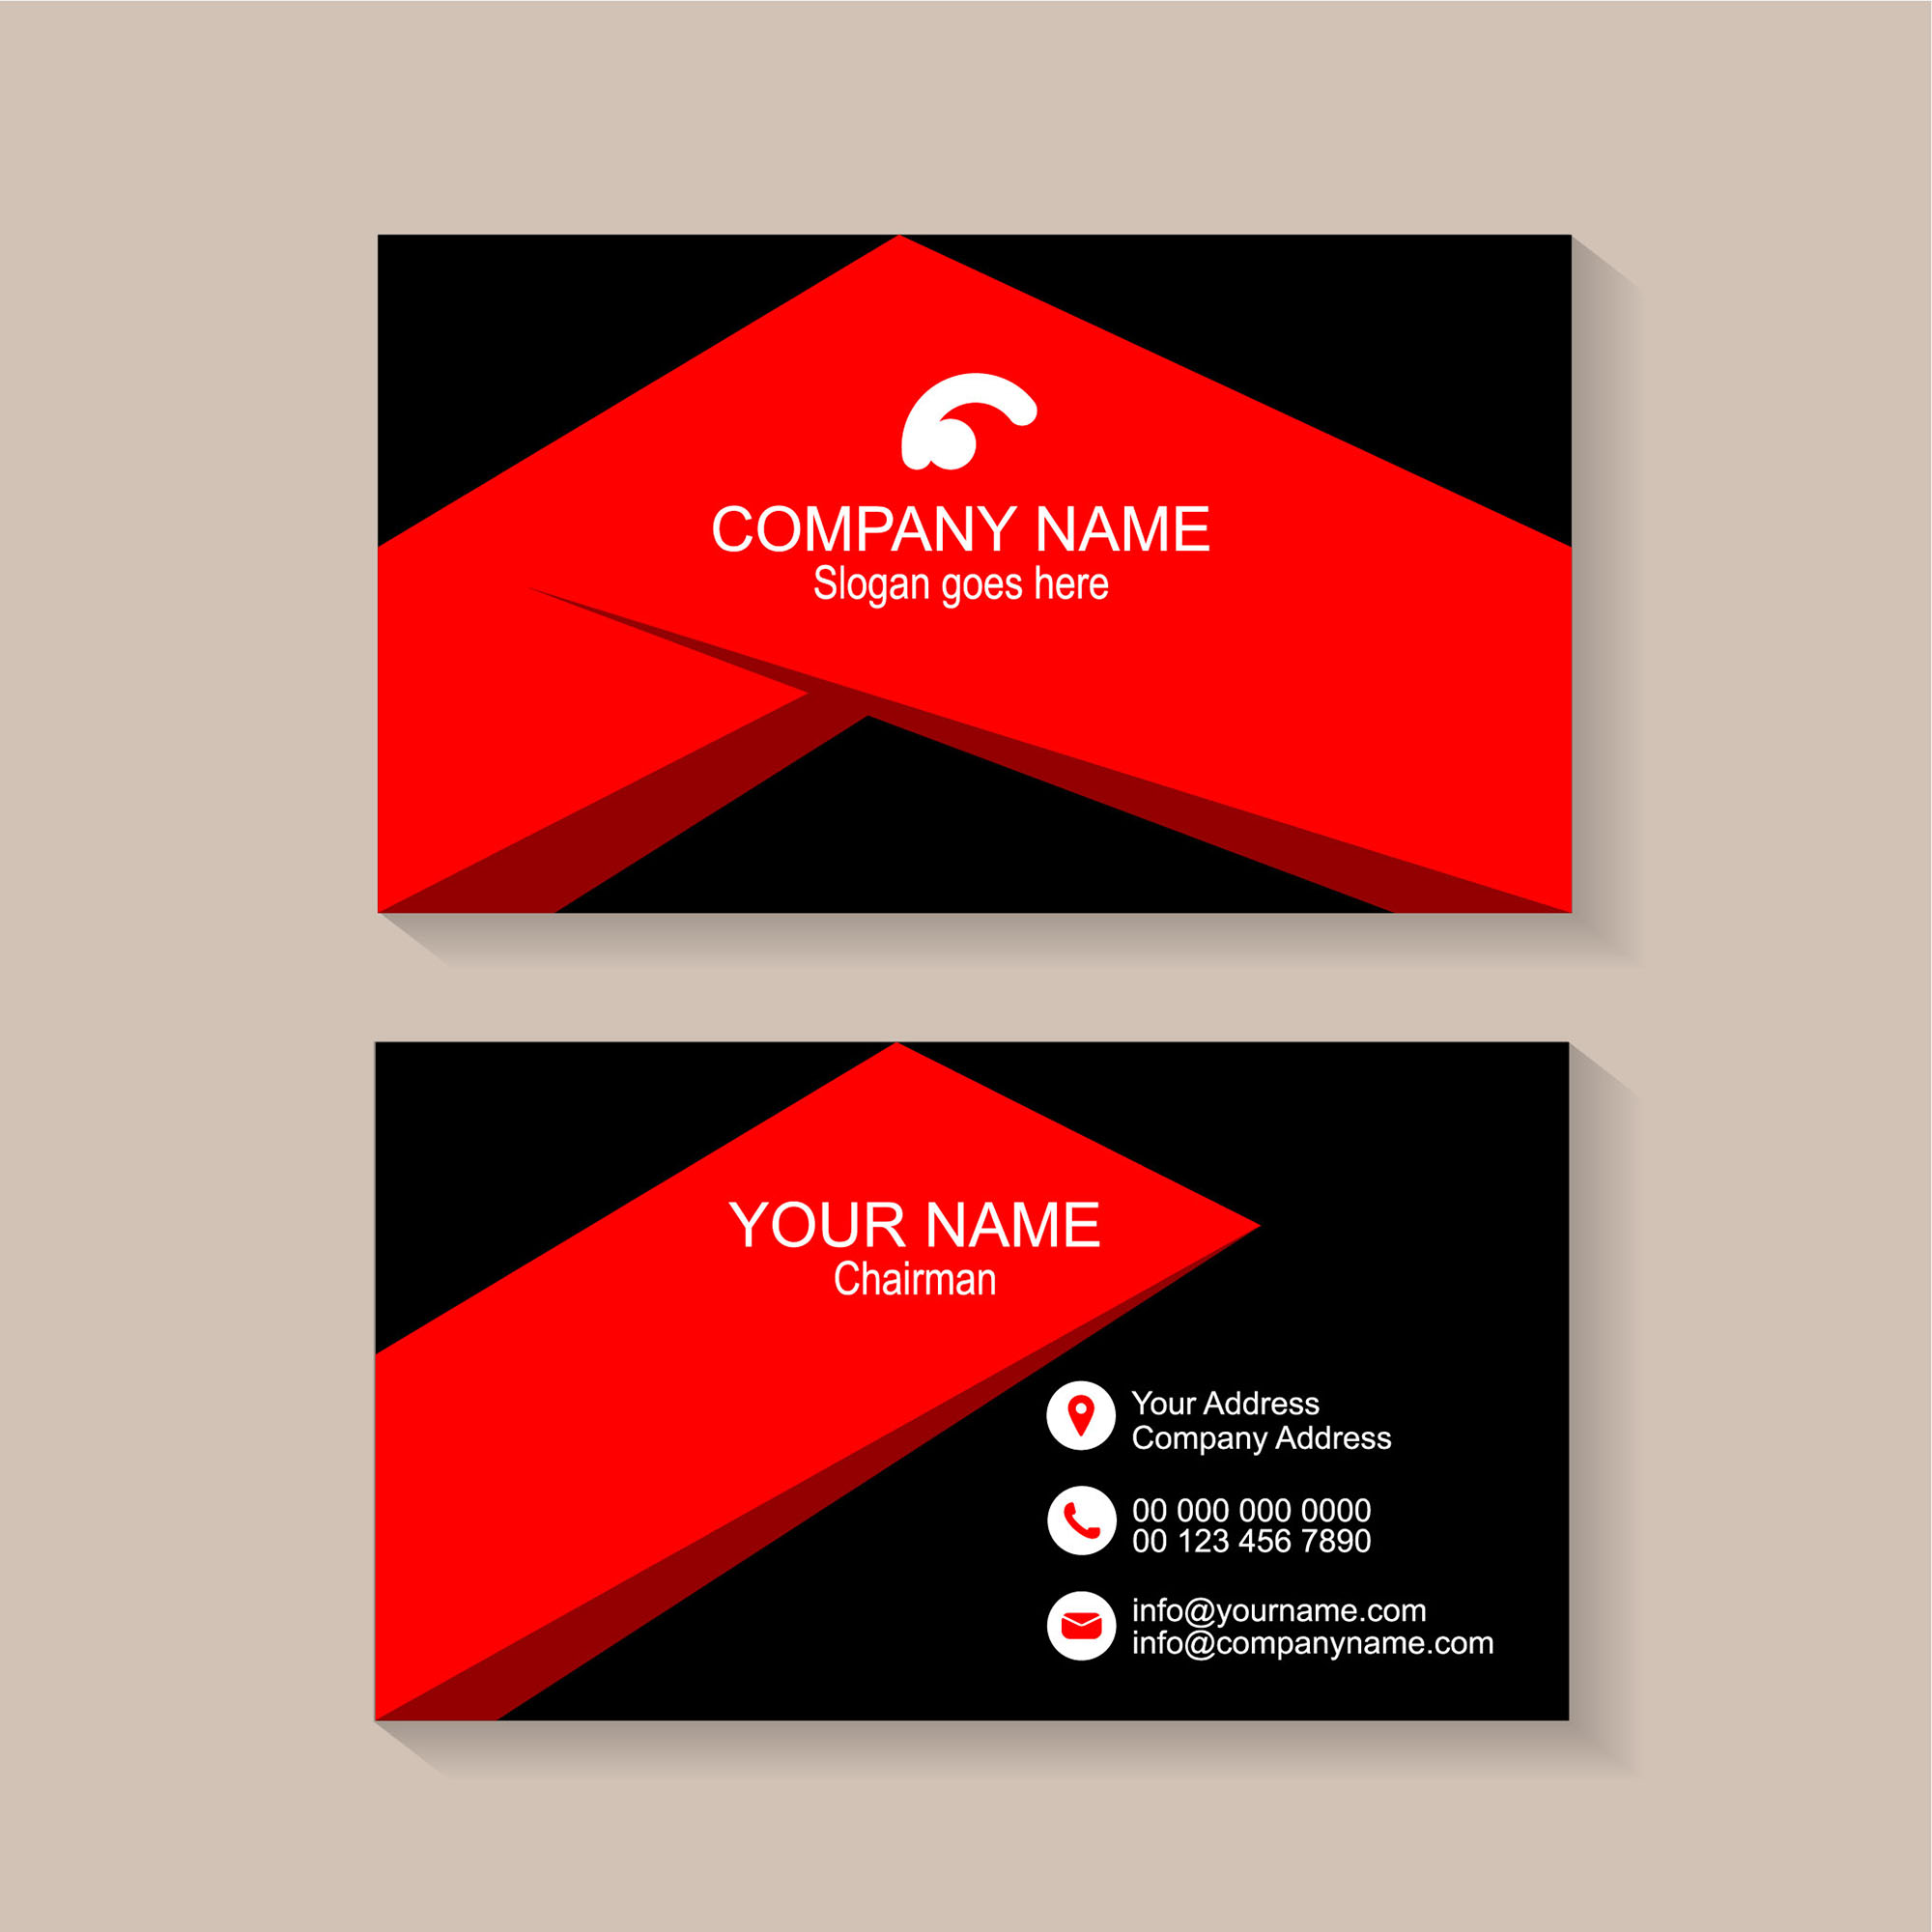 Business card template design free download wisxi business card business cards business card design business card template design templates accmission Choice Image